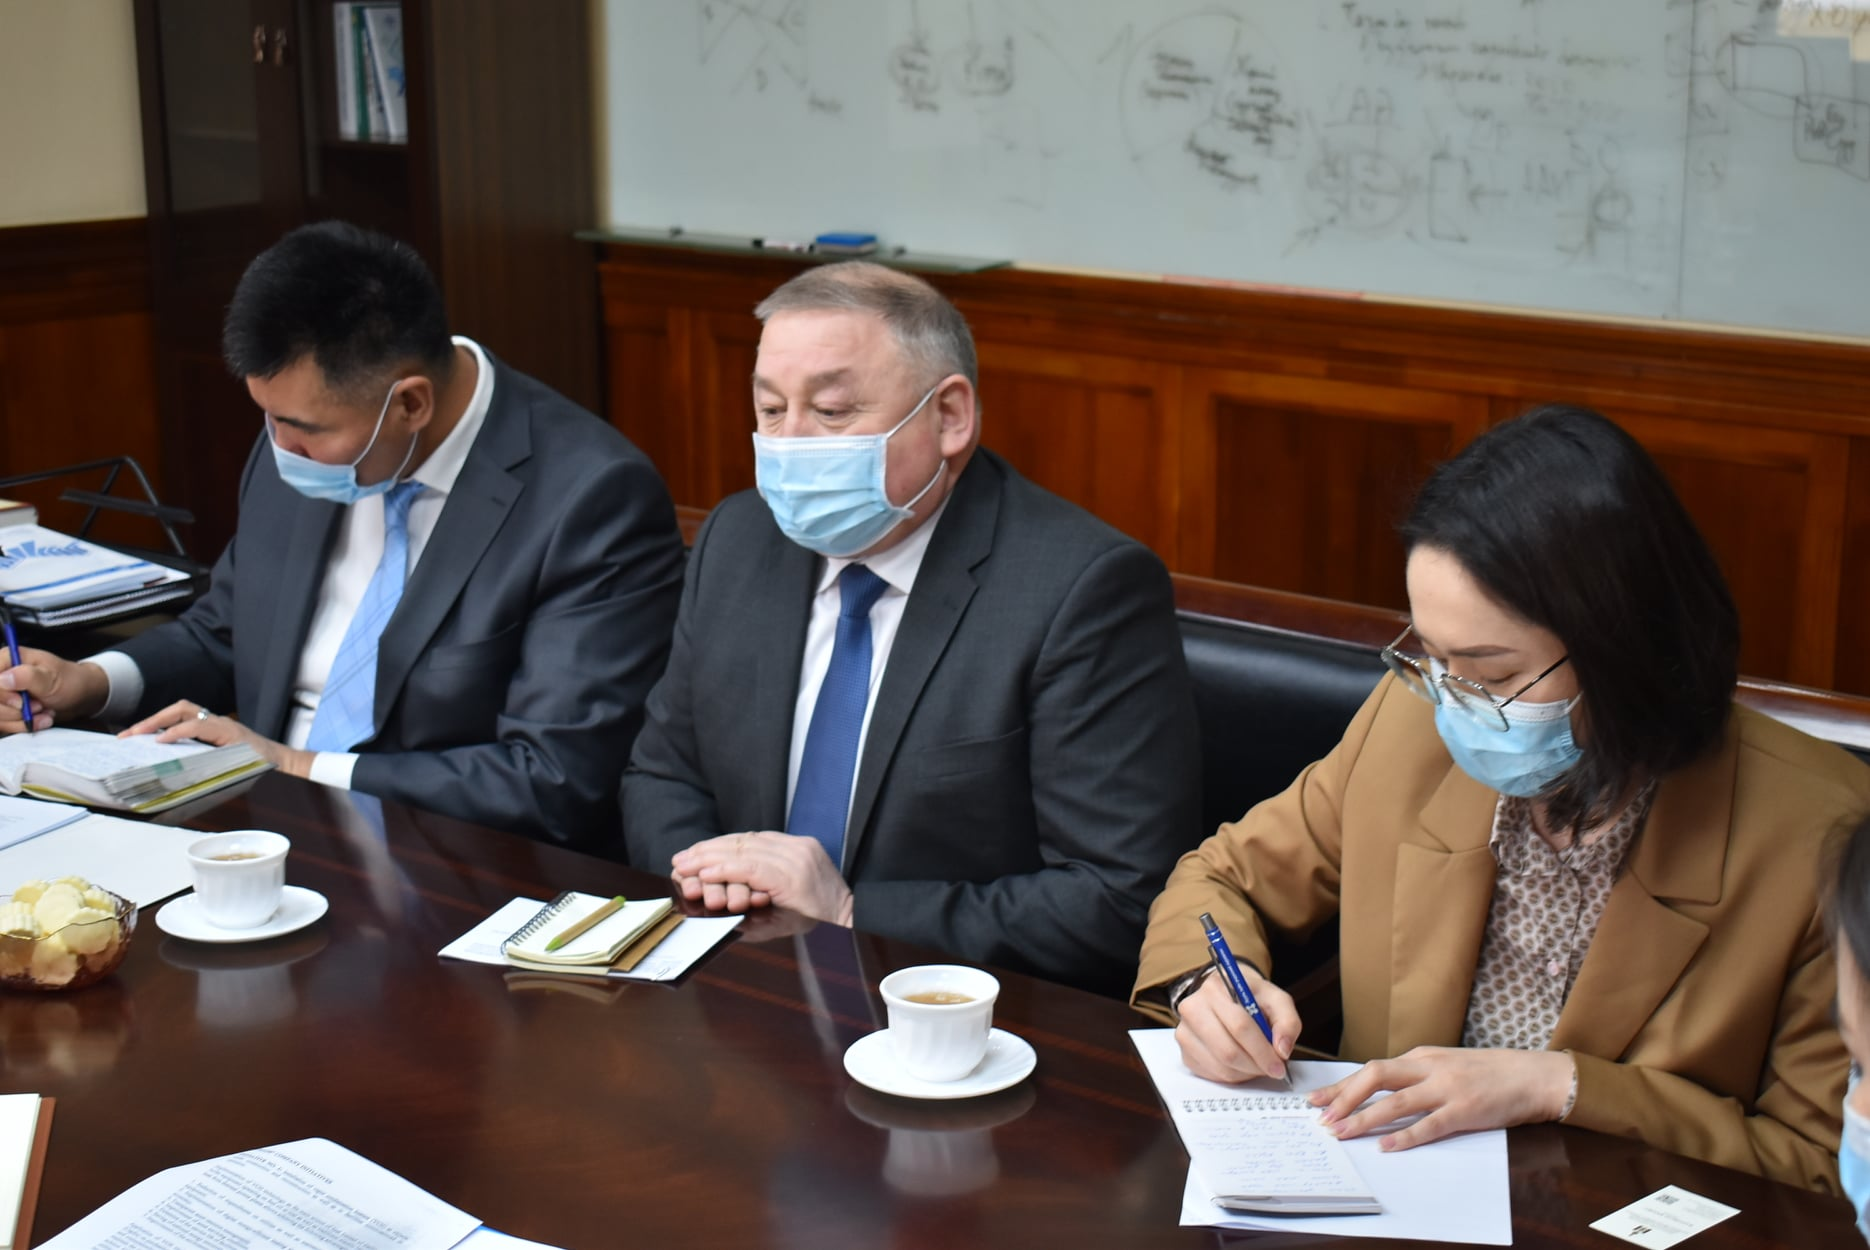 An official meeting was held with the Ambassador of the Republic of Kazakhstan and other representatives